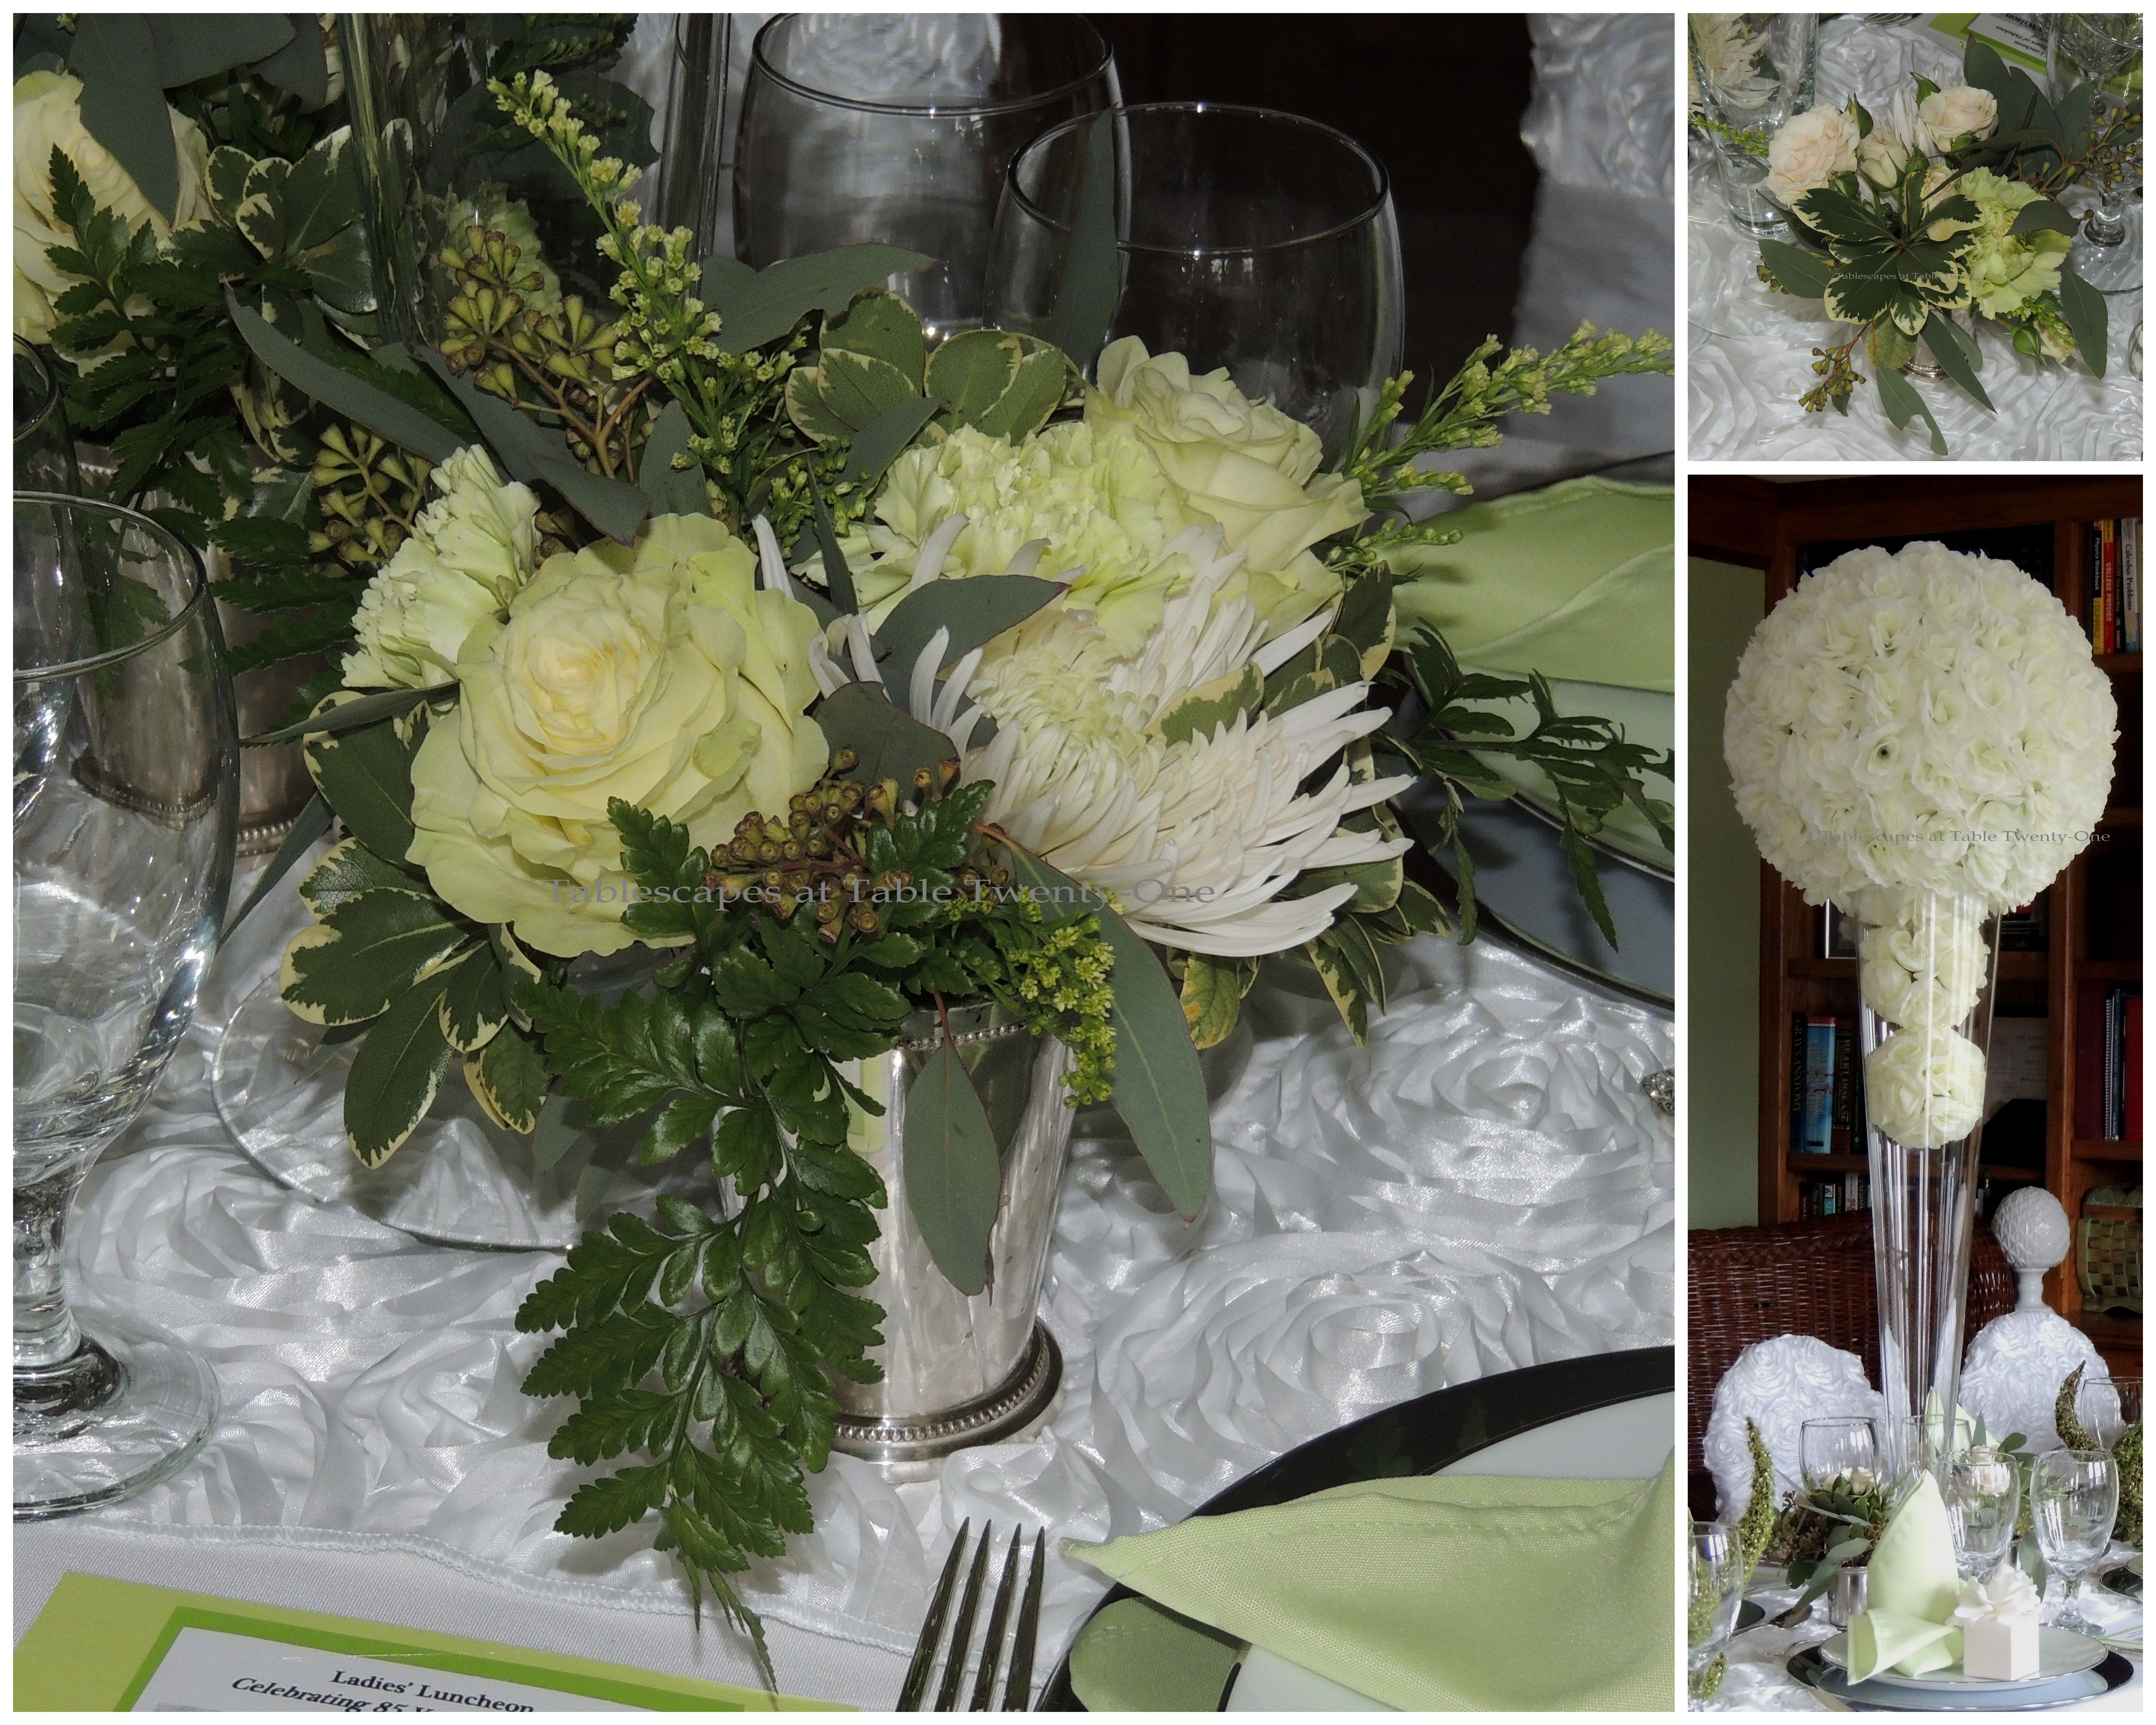 Tablescapes at Table Twenty-One, www.tabletwentyone.wordpress.com: Celebrating 85 Years of Fabulous - Centerpiece floral collage